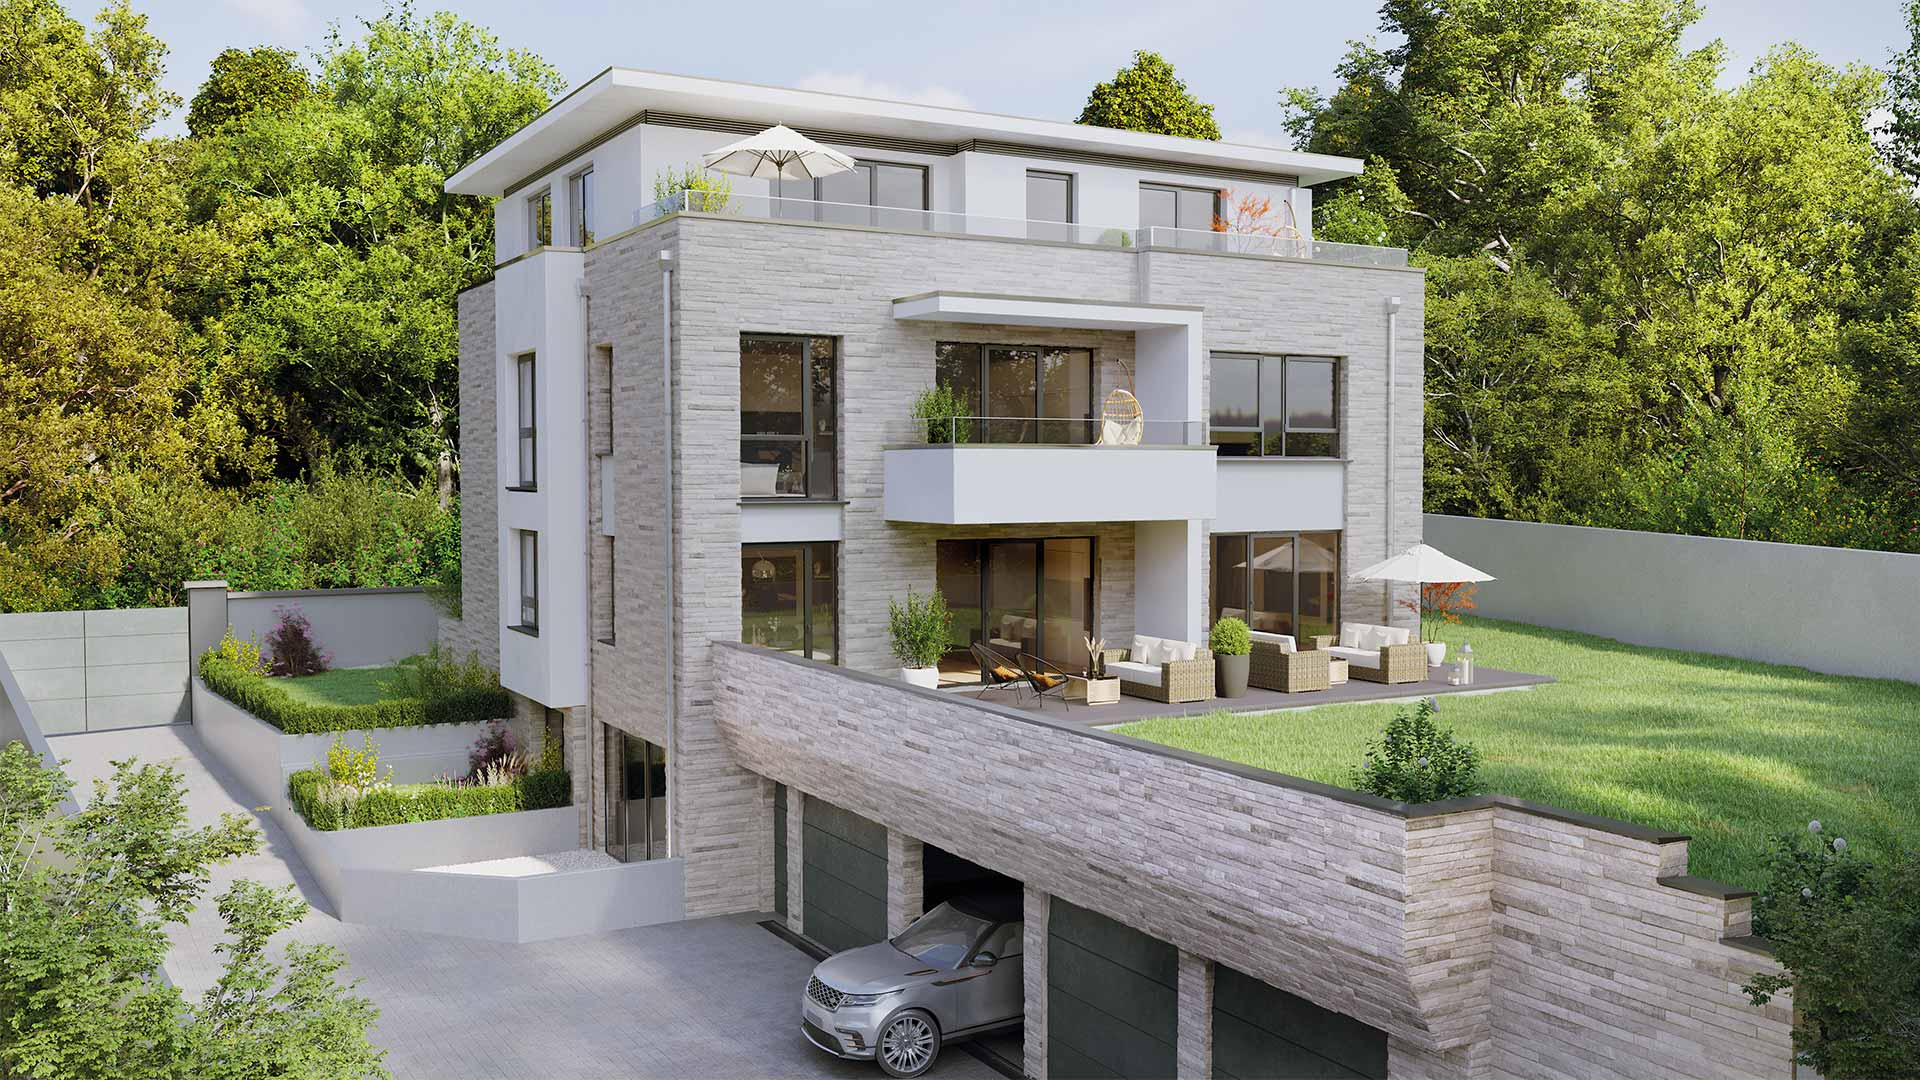 PARK-AVENUE_2_Raum_Visionen_Immobilien_marketing